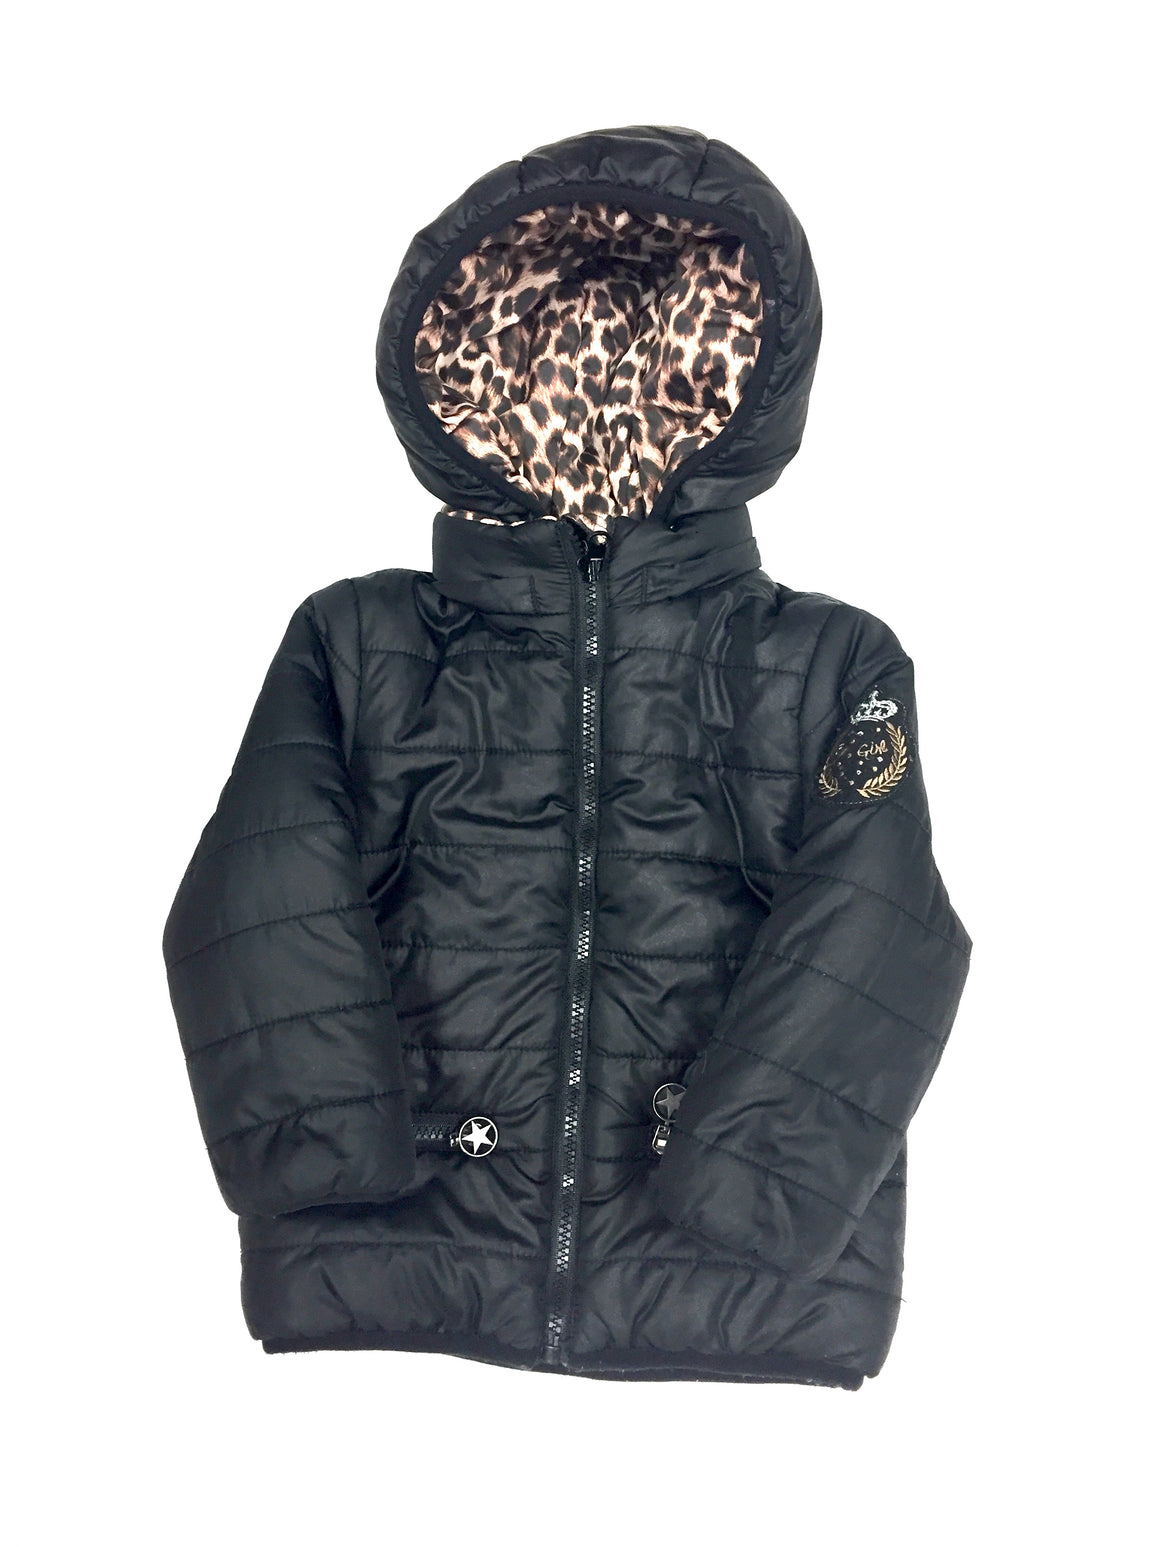 bisbiz.com 3POMMES Black/Brown Animal-Print Poly-Quilted Boy's Reversible Puffy Coat Size:  3 Years - Bis Luxury Resale